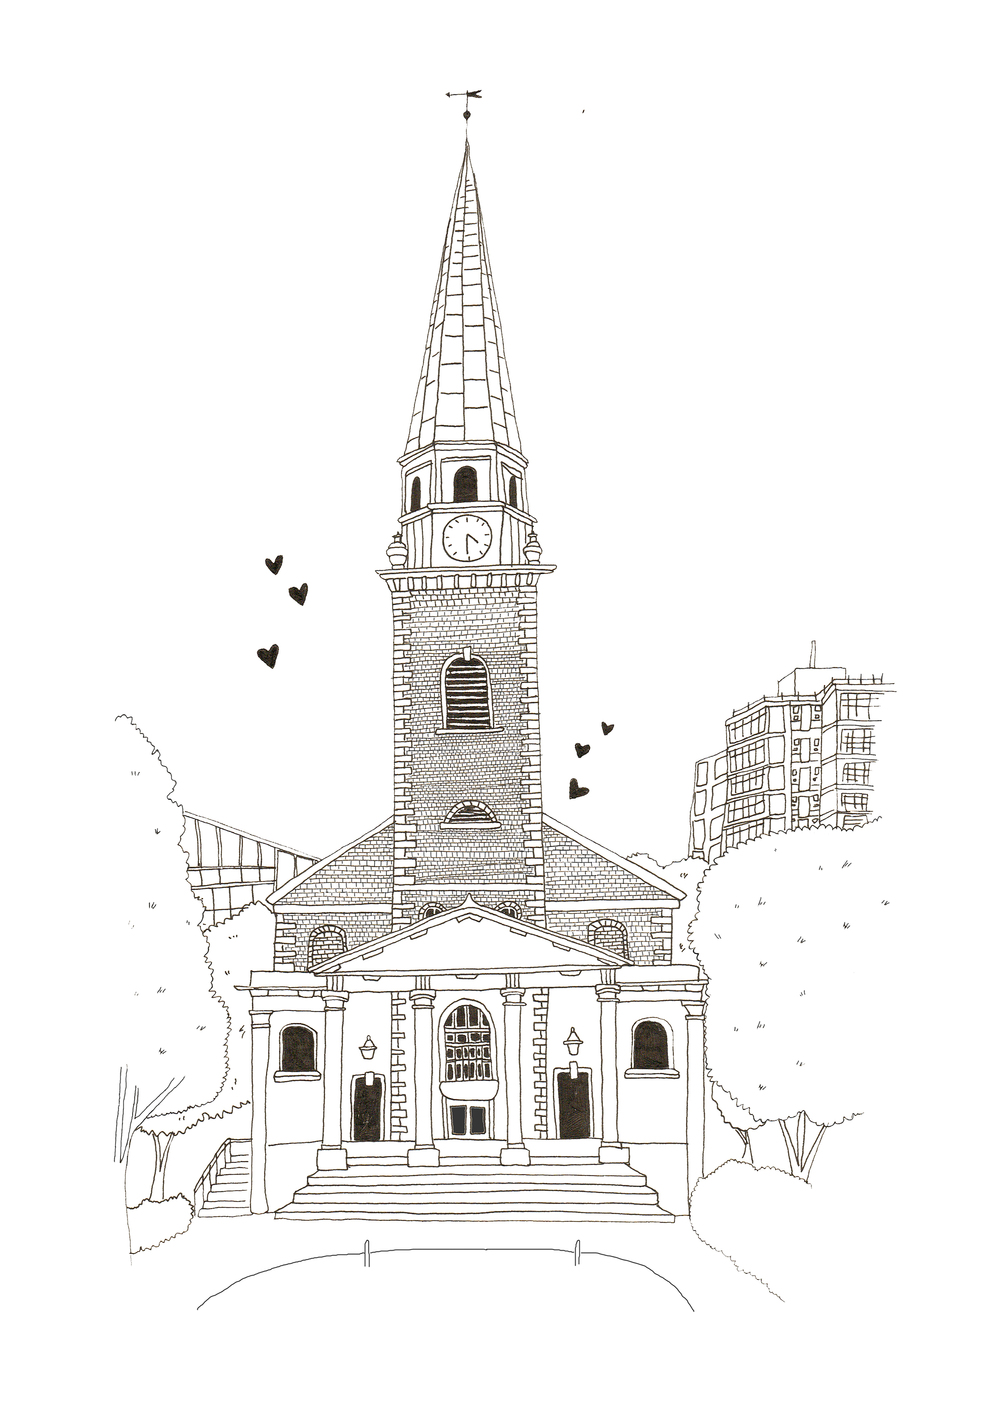 st-marys-church-battersea-illustration